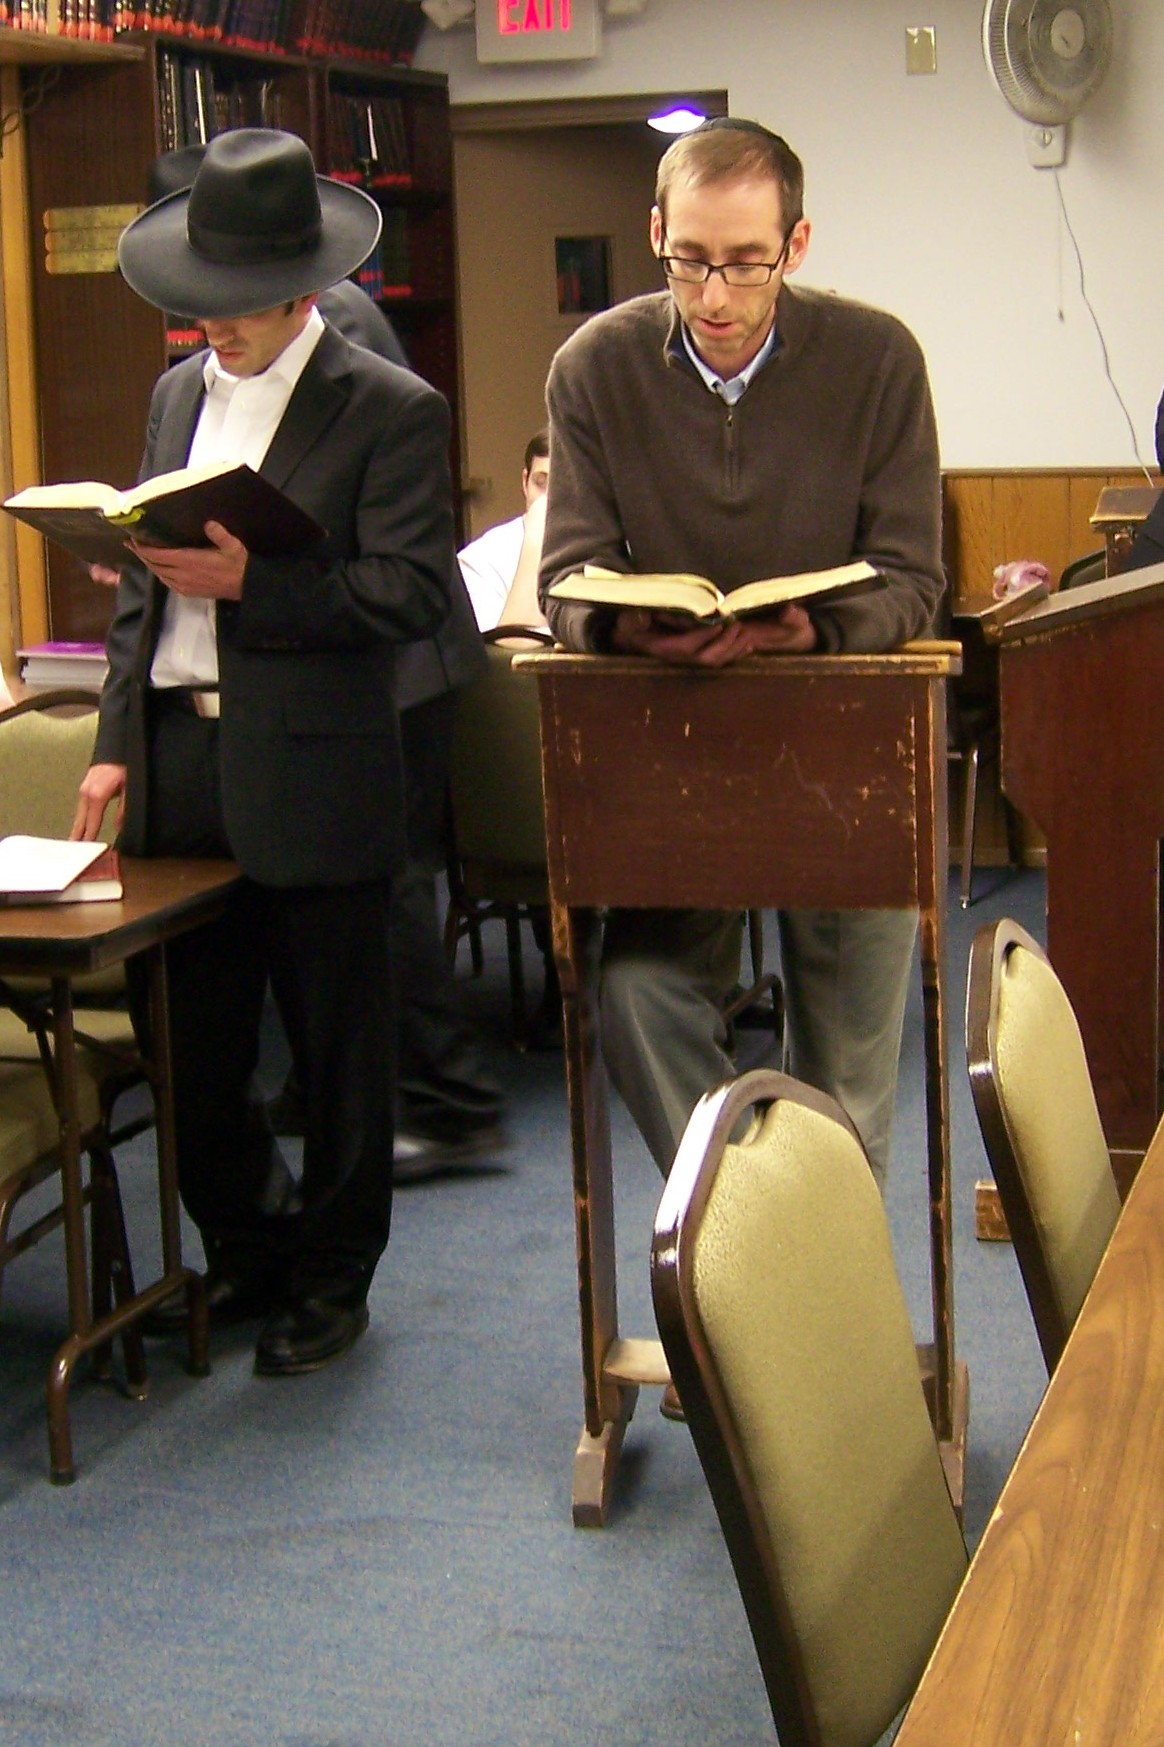 rabbi-mordechai-nadoff-and-dr-howard-goldman-making-a-siyum-on-maseches-makos-jpg